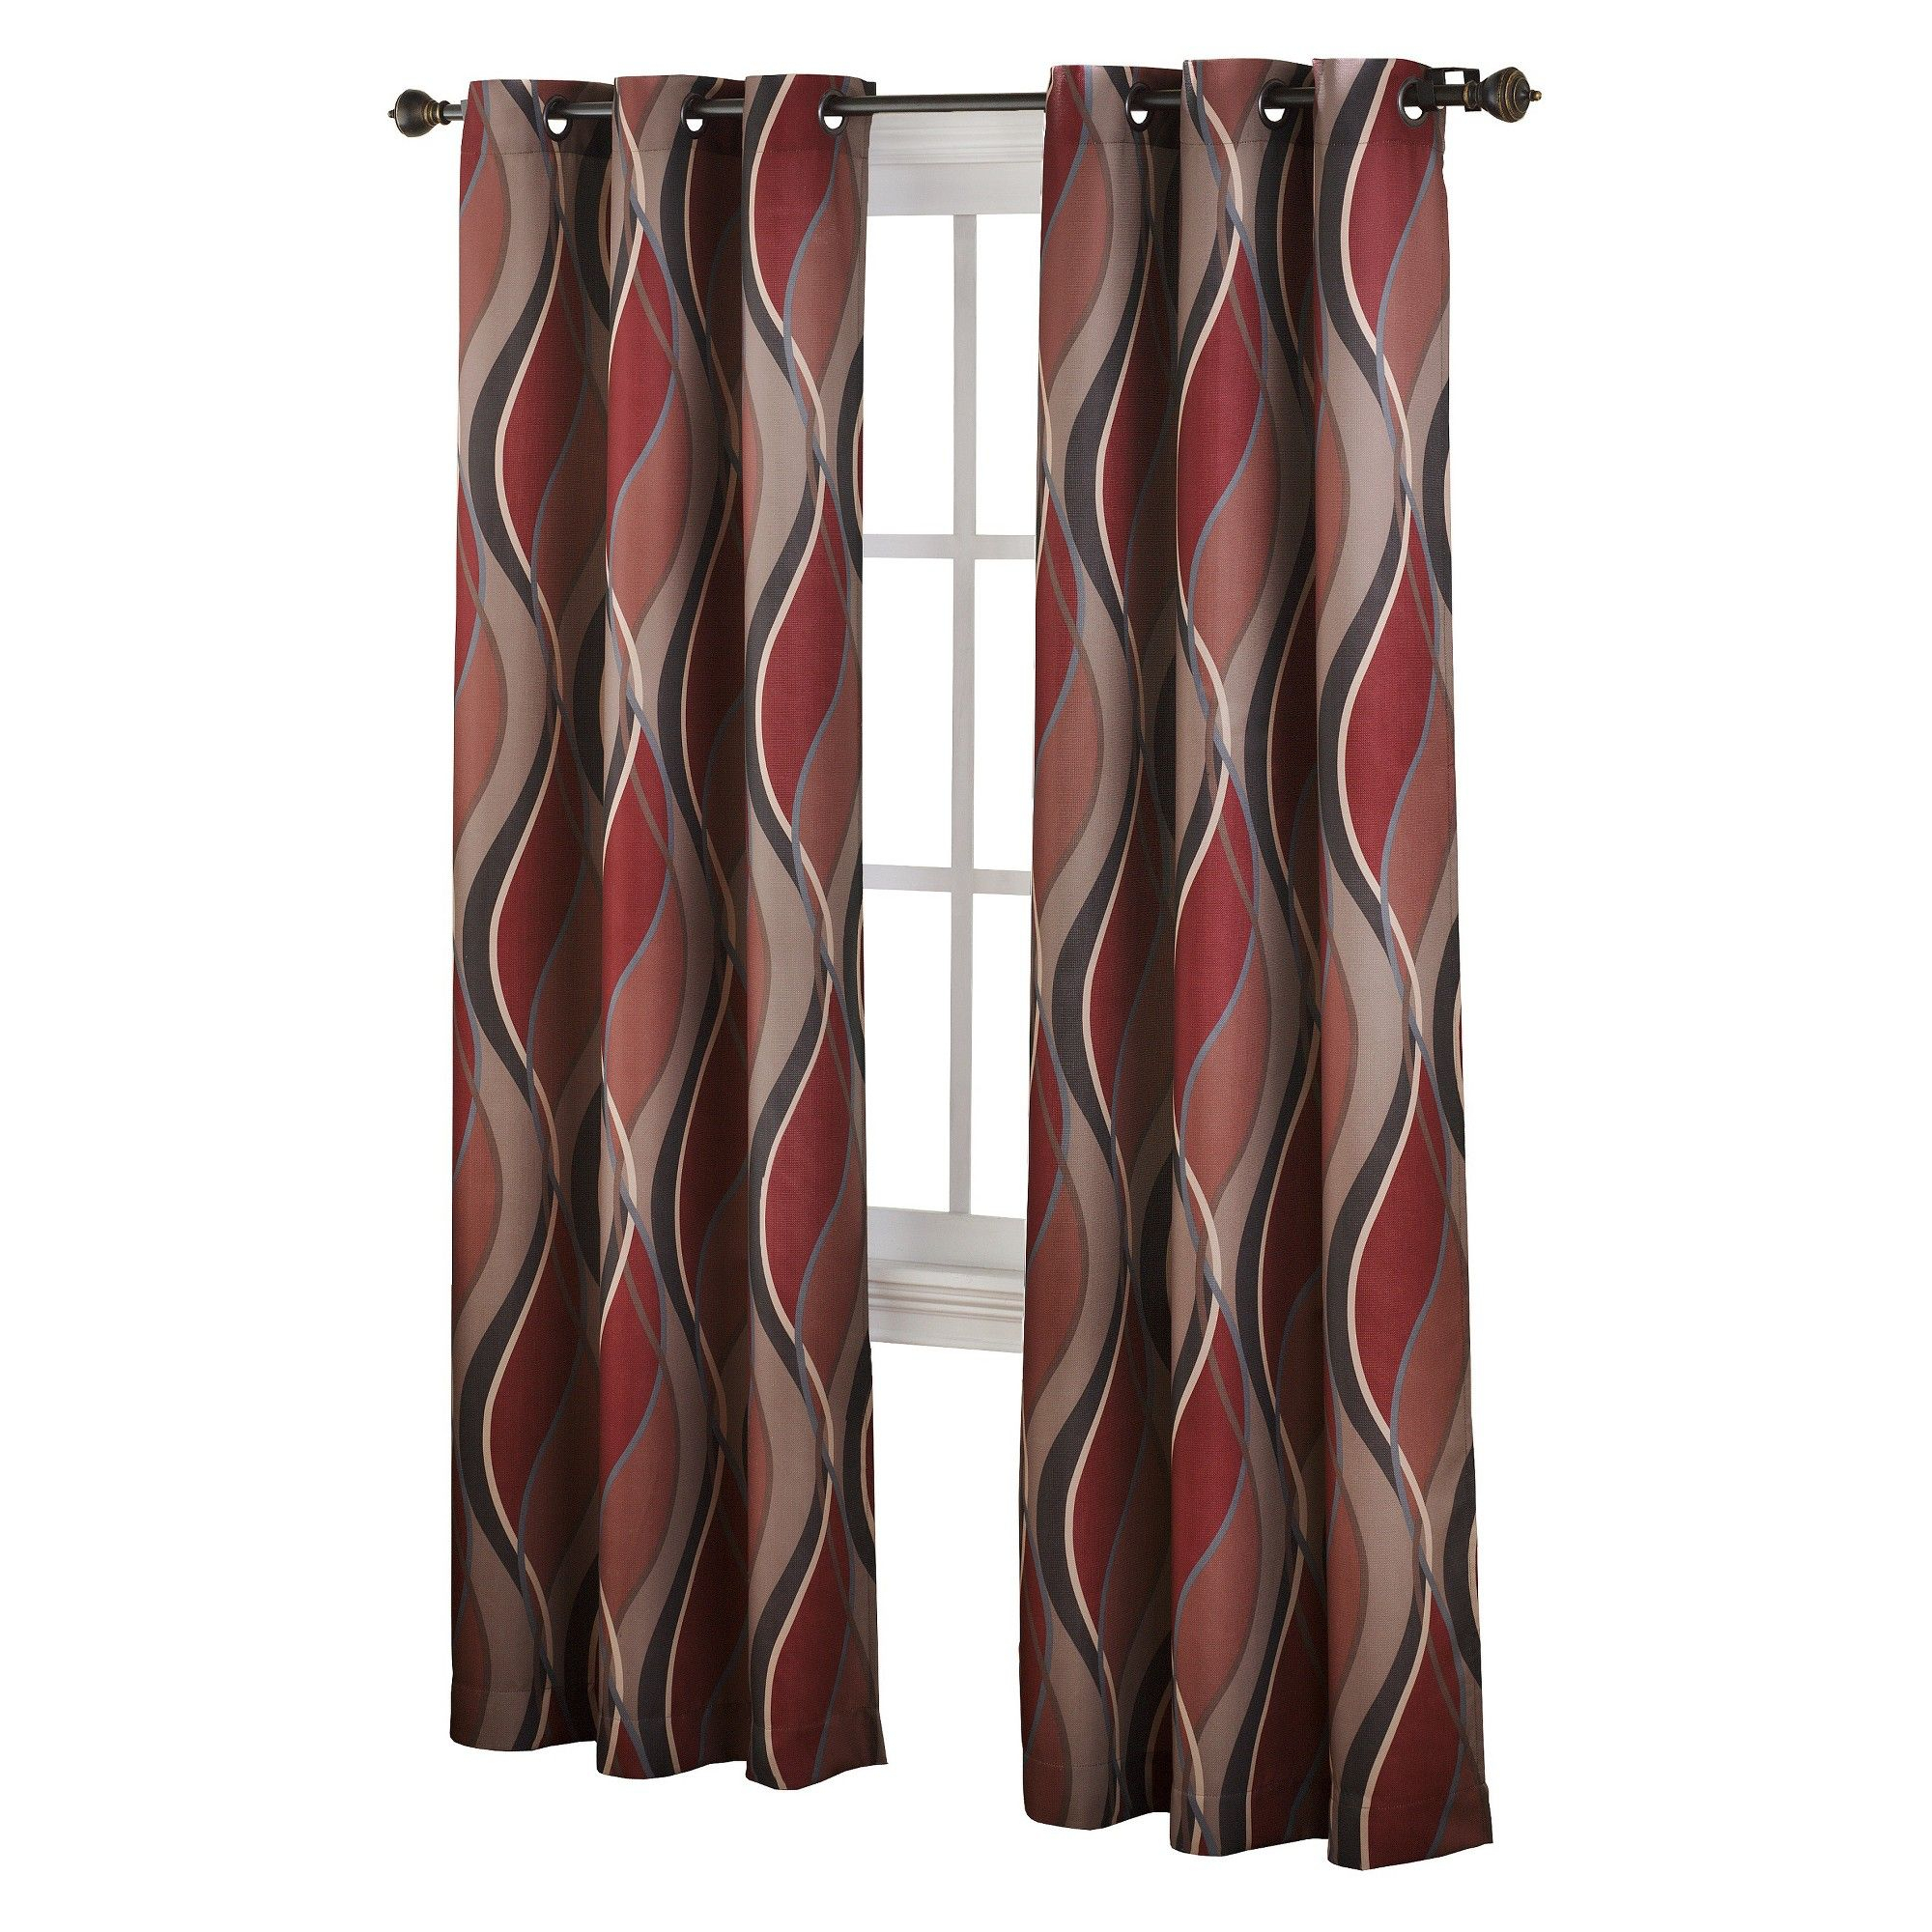 Intersect Wave Print Casual Textured Grommet Curtain Panel Regarding Intersect Grommet Woven Print Window Curtain Panels (View 4 of 20)